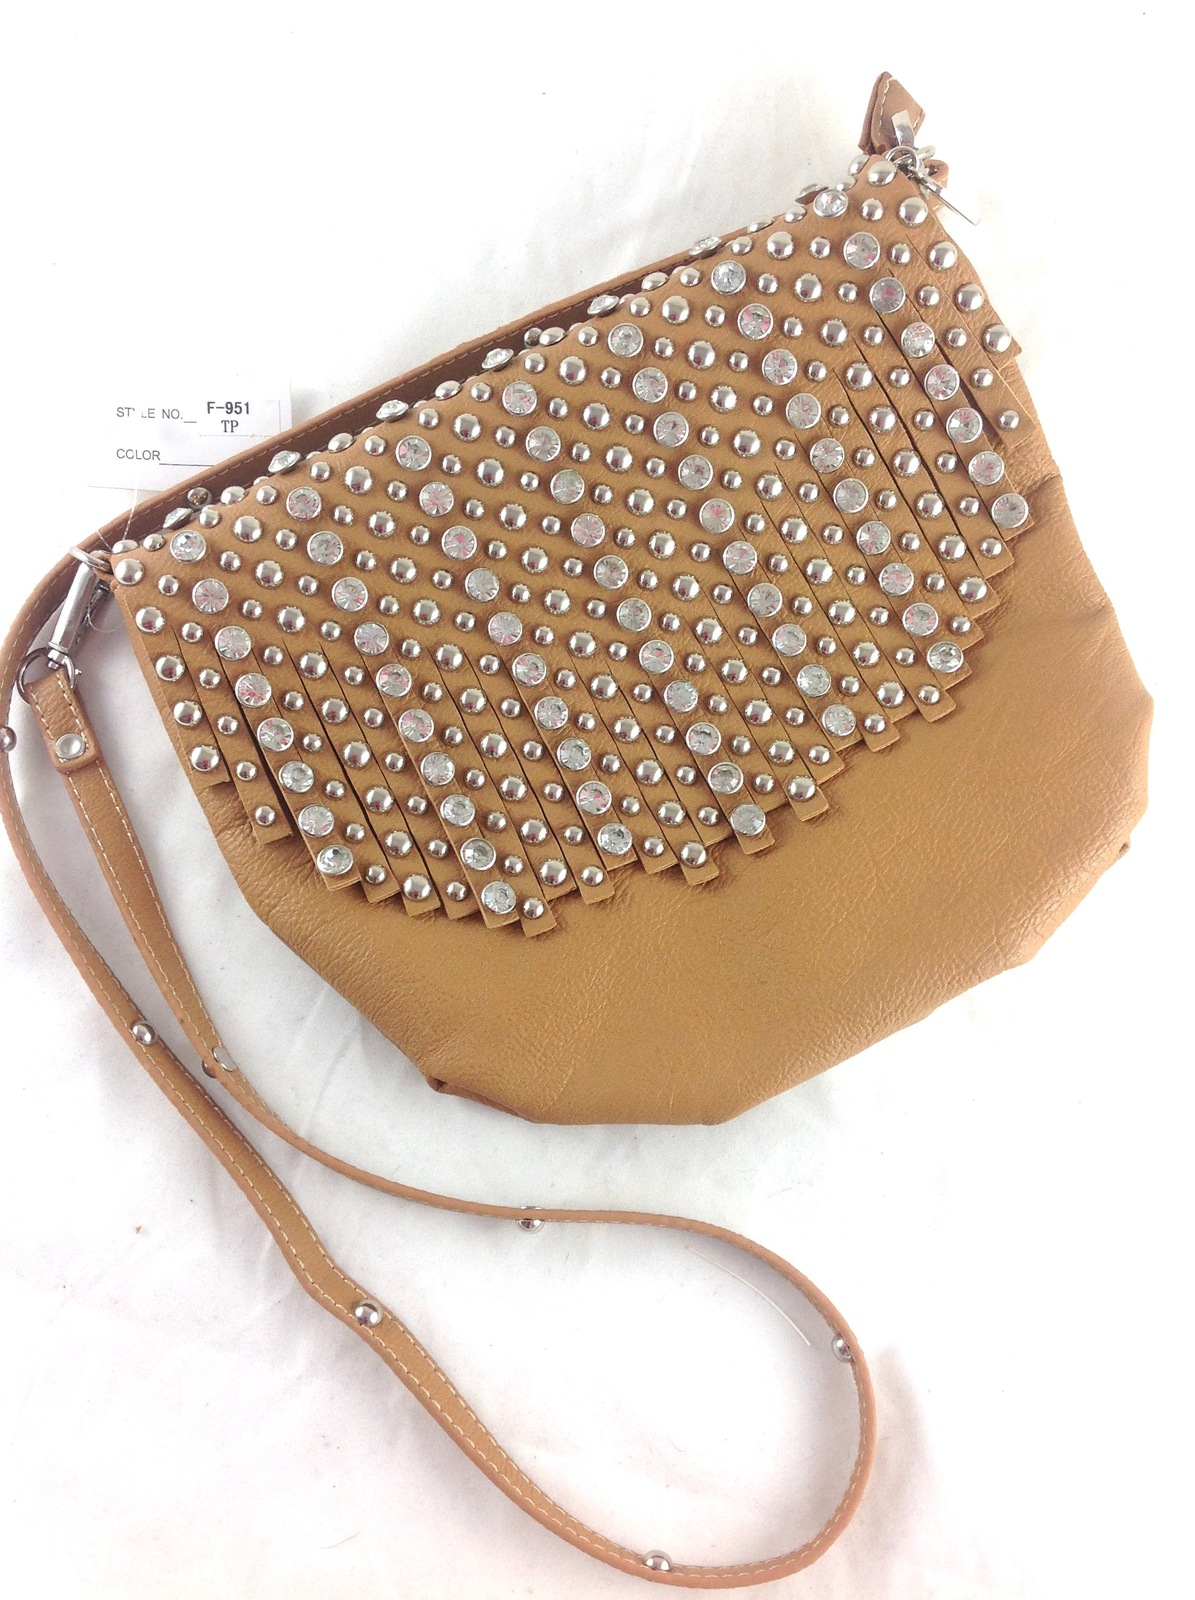 Designer Inspired Tan Fringed Cross Body Bag w/ Crystals & Studs